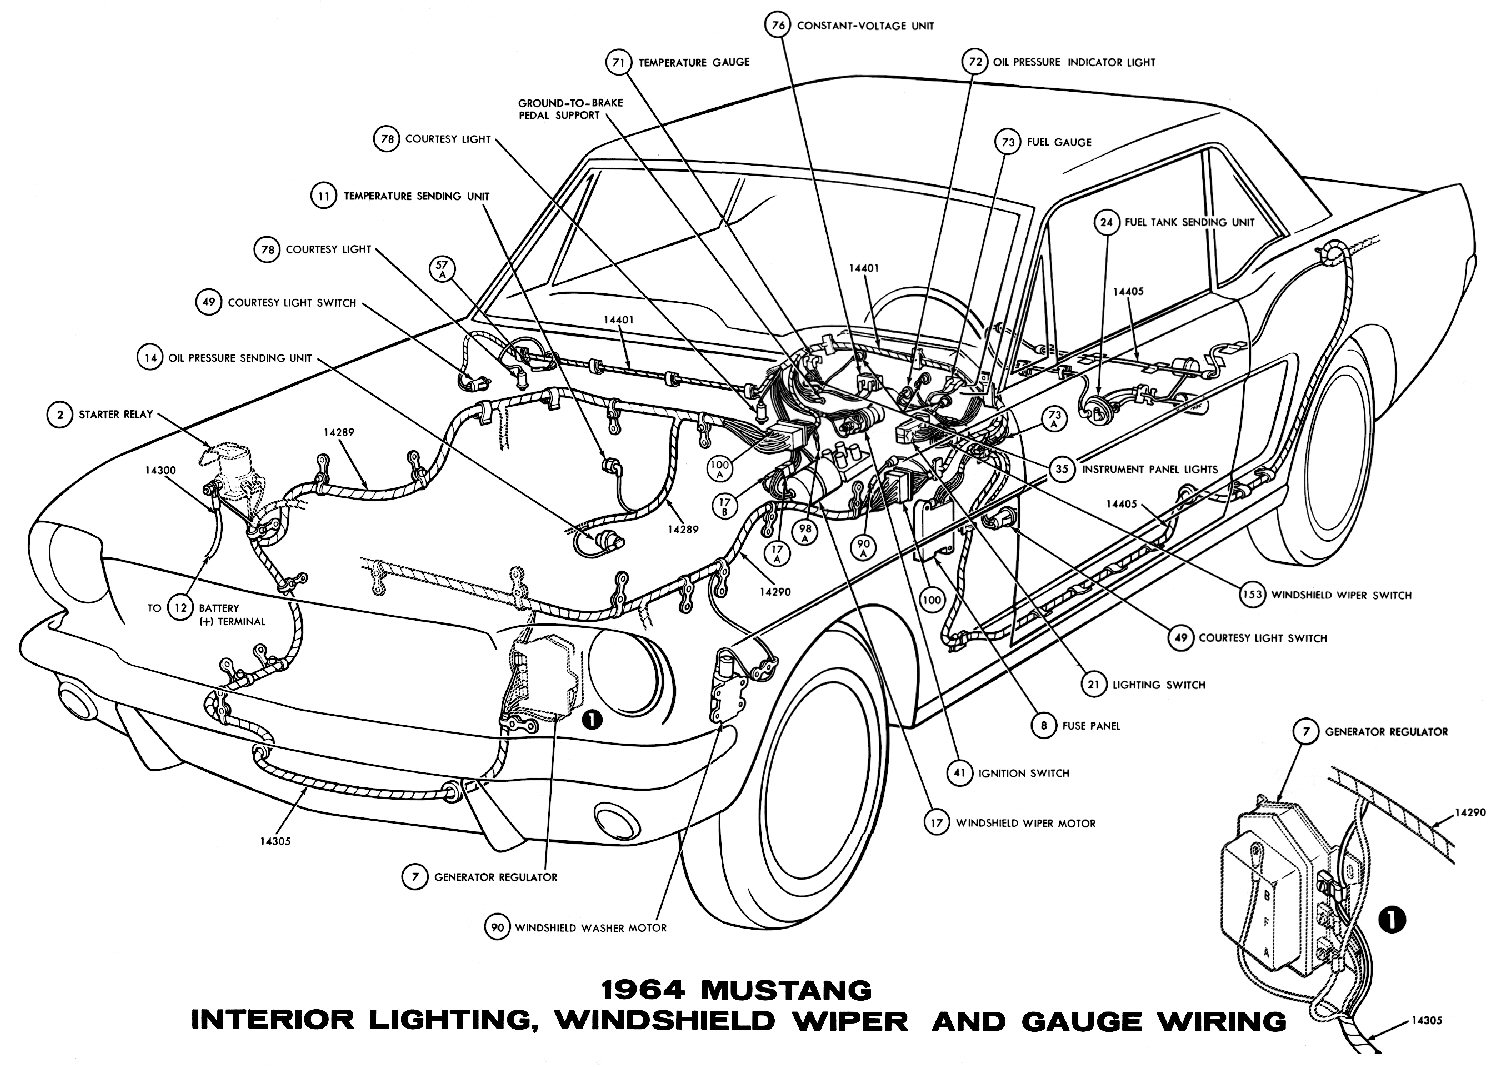 1964 Mustang Wiring Diagrams Average Joe Restoration Generator To Fuse Box Sm1964j